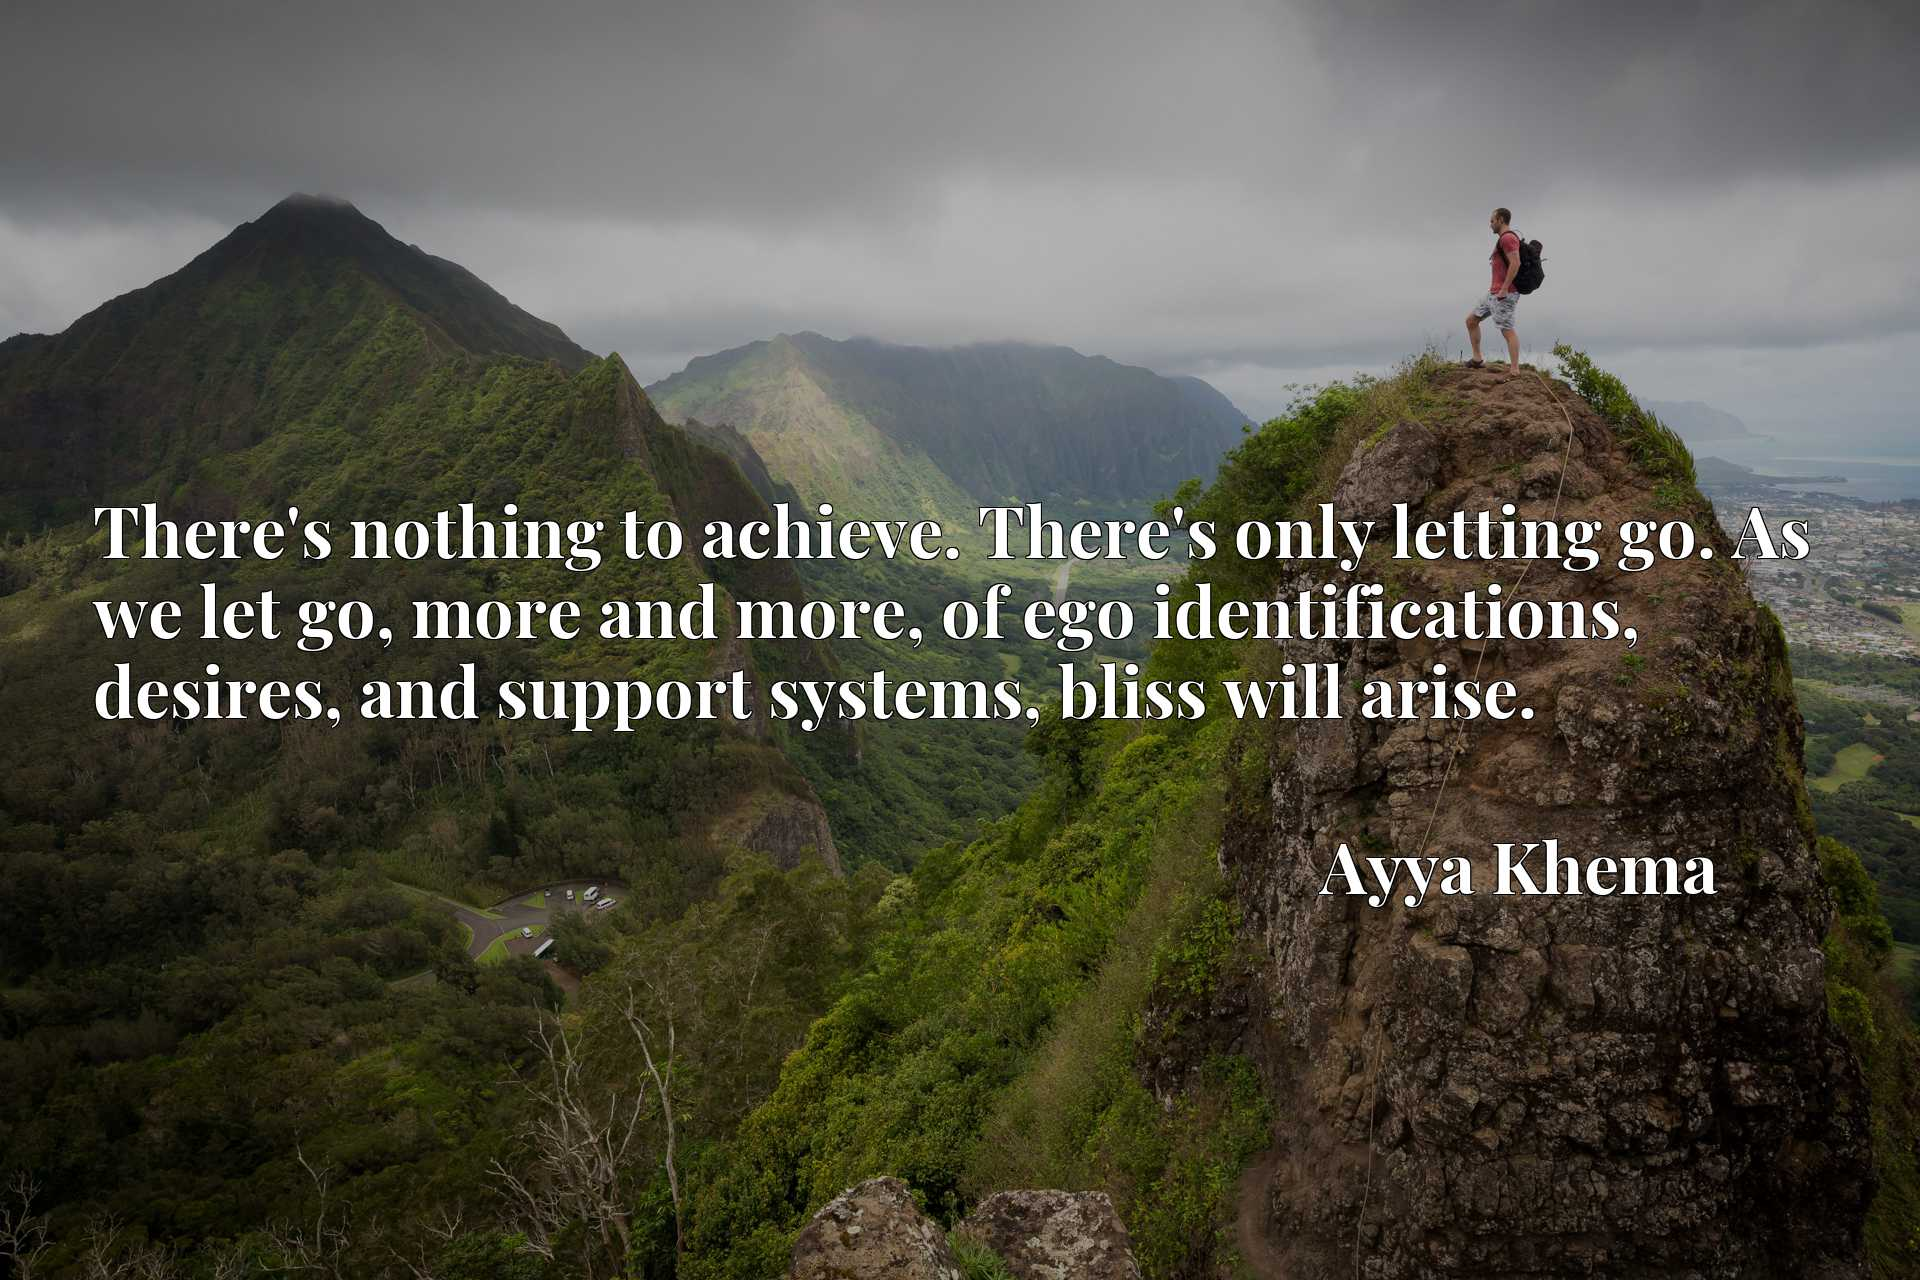 Quote Picture :There's nothing to achieve. There's only letting go. As we let go, more and more, of ego identifications, desires, and support systems, bliss will arise.